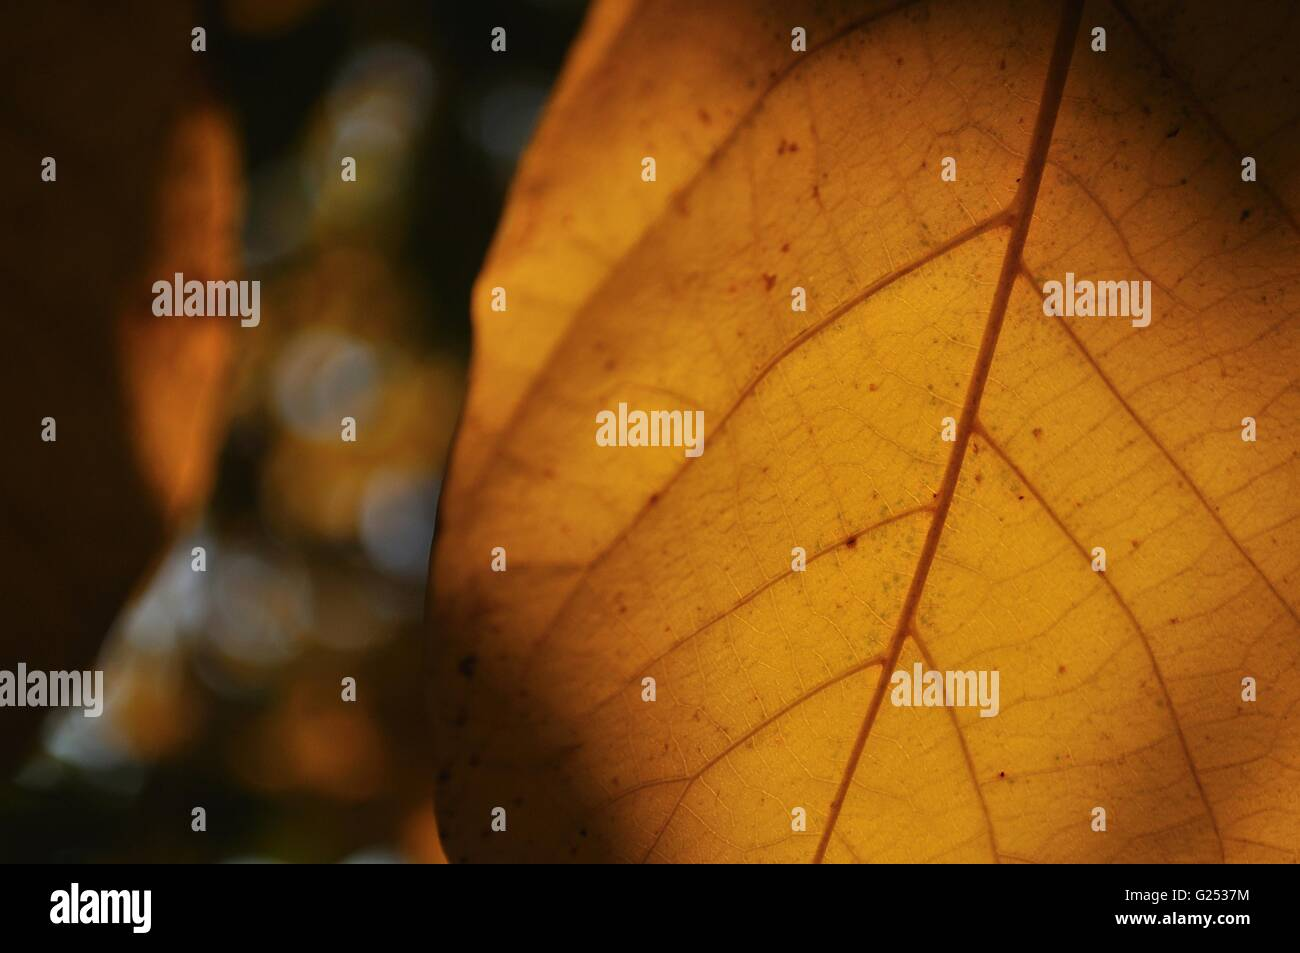 Detail view of autumn leaf with blurred background - Stock Image